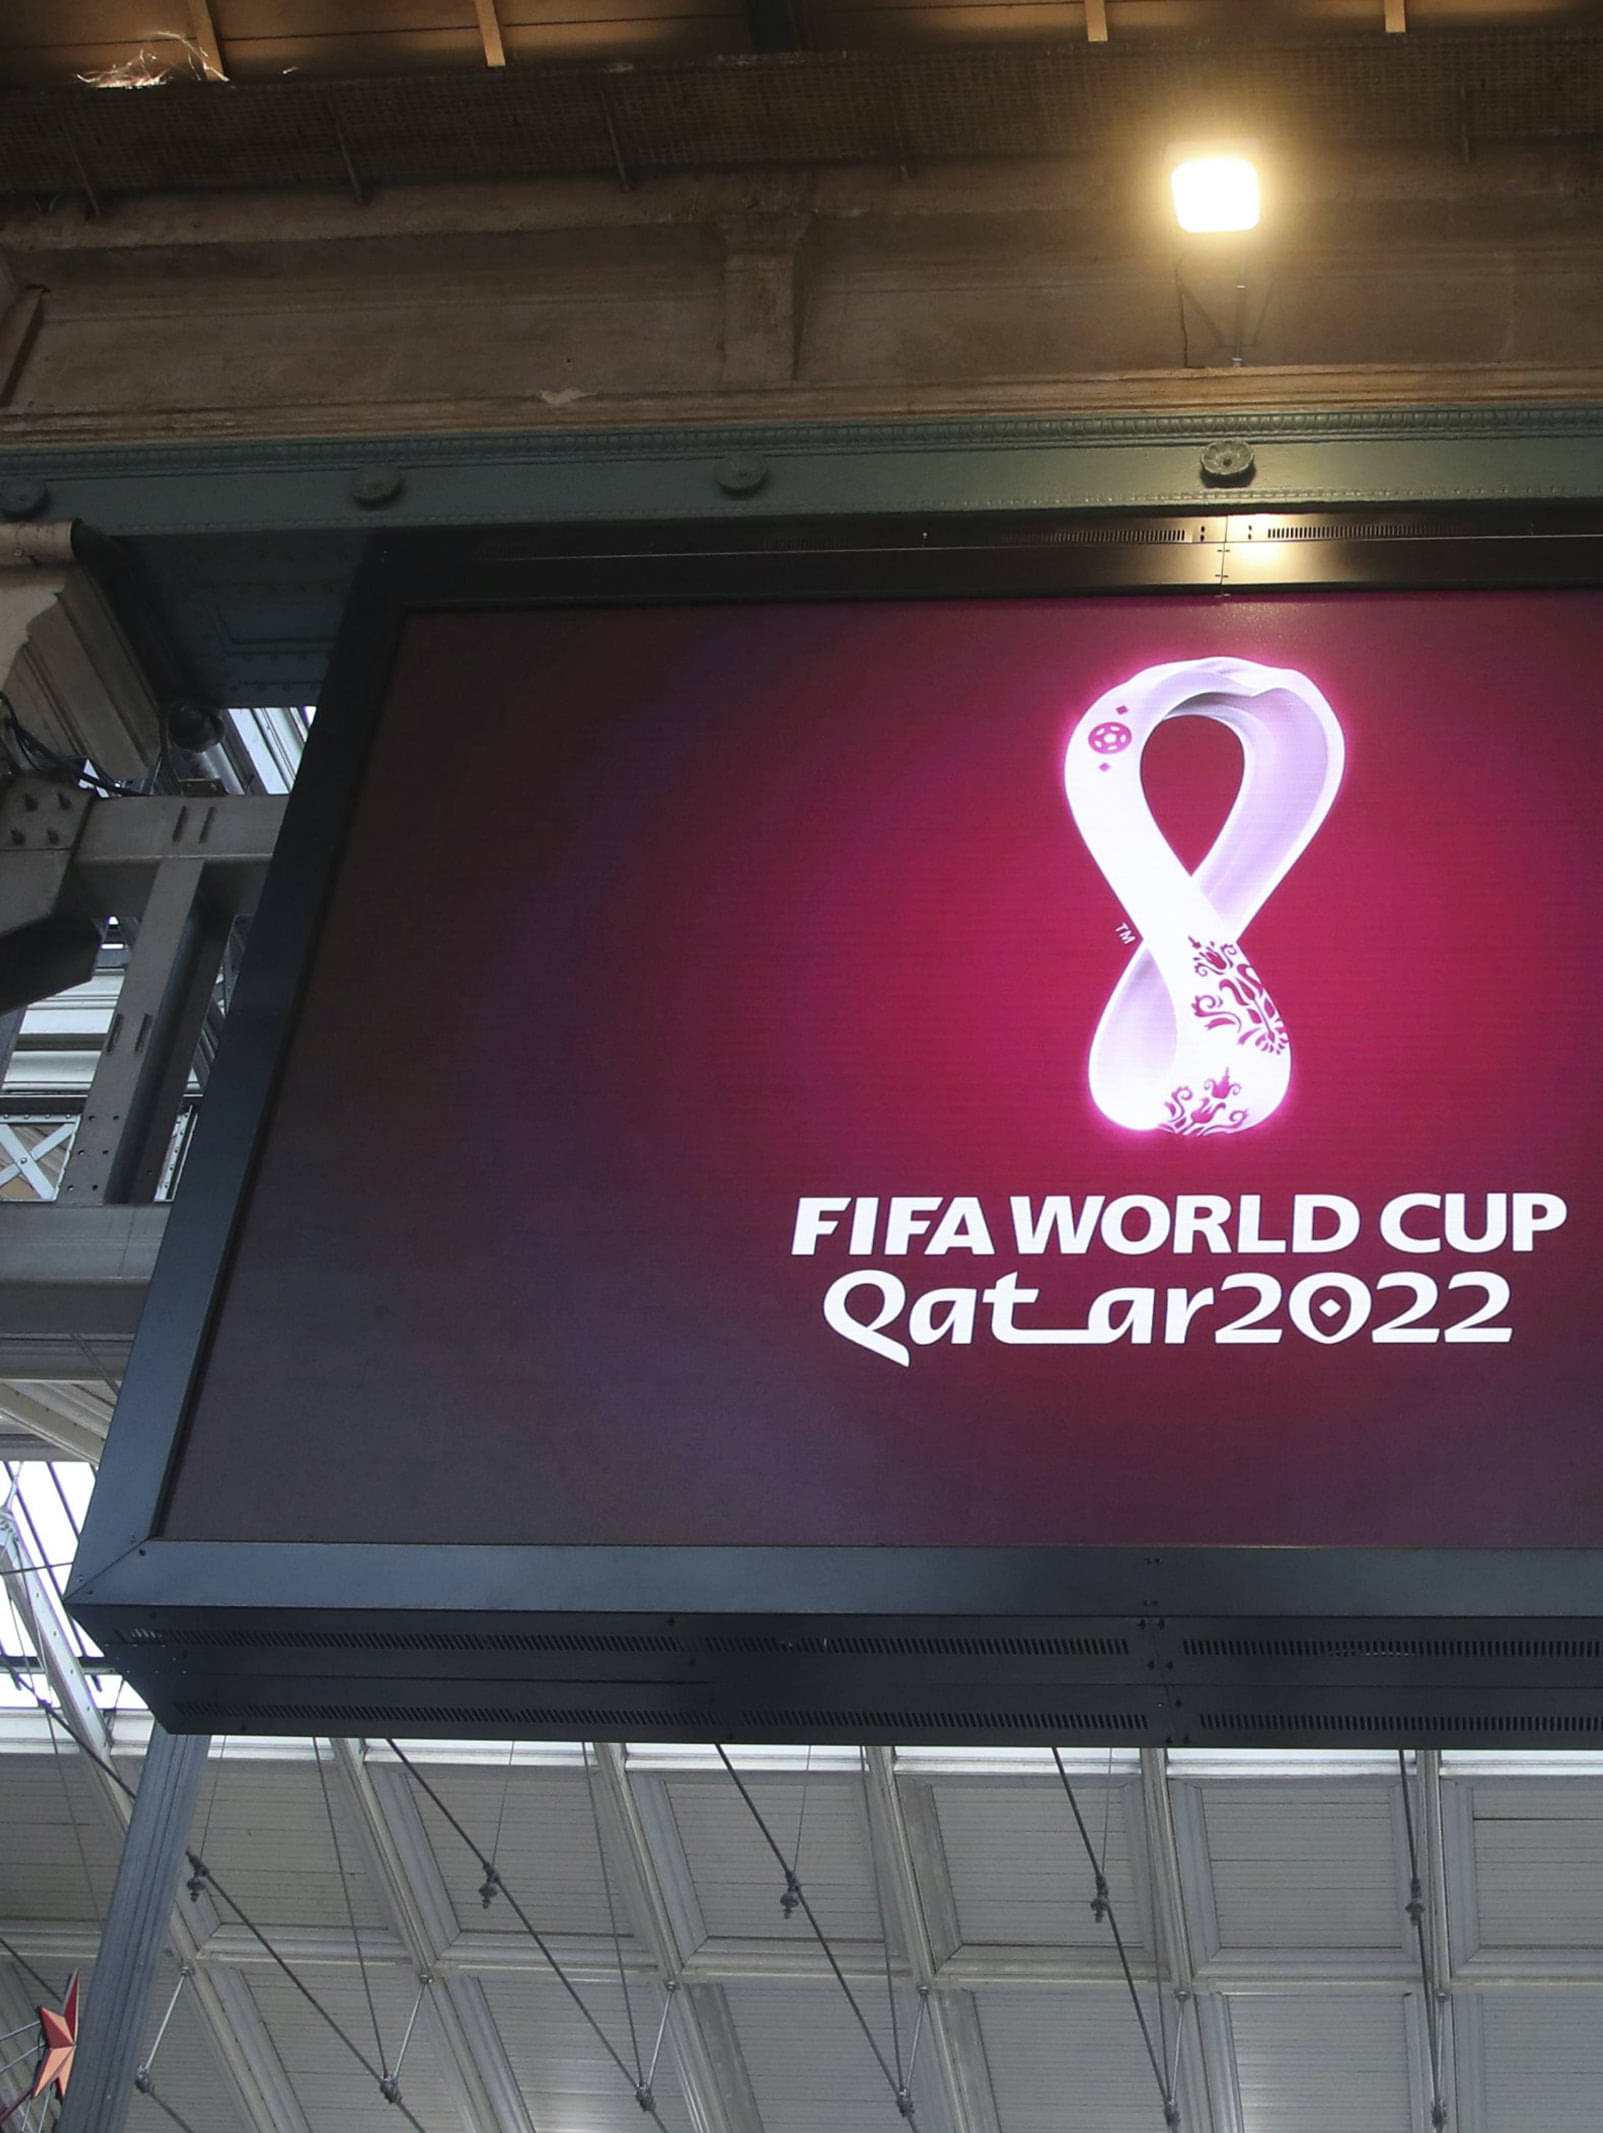 NORTH AMERICAN QUALIFYING FOR 2022 WORLD CUP DELAYED